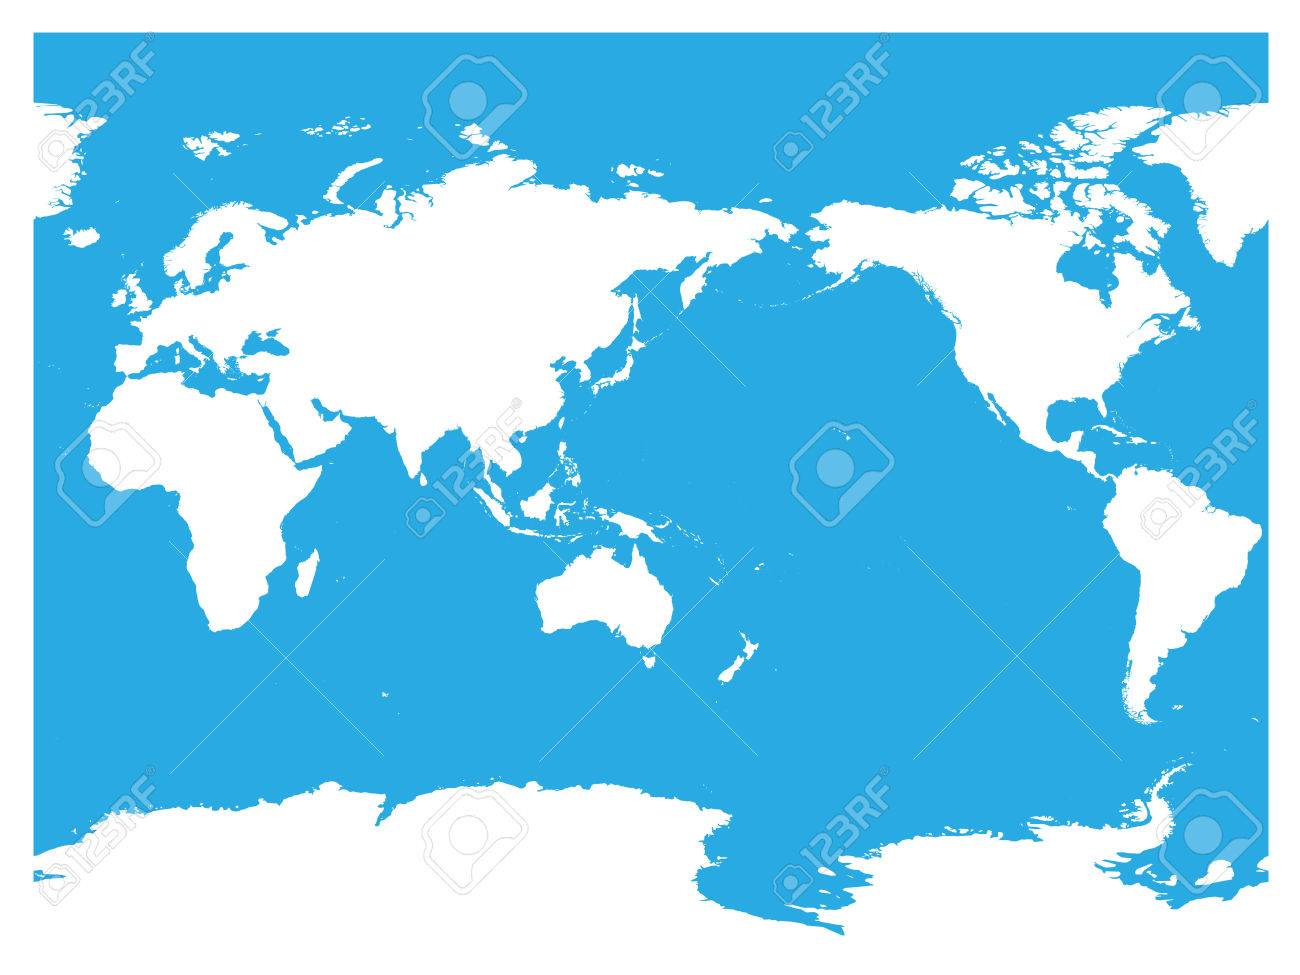 Australia And Pacific Ocean Centered World Map High Detail White